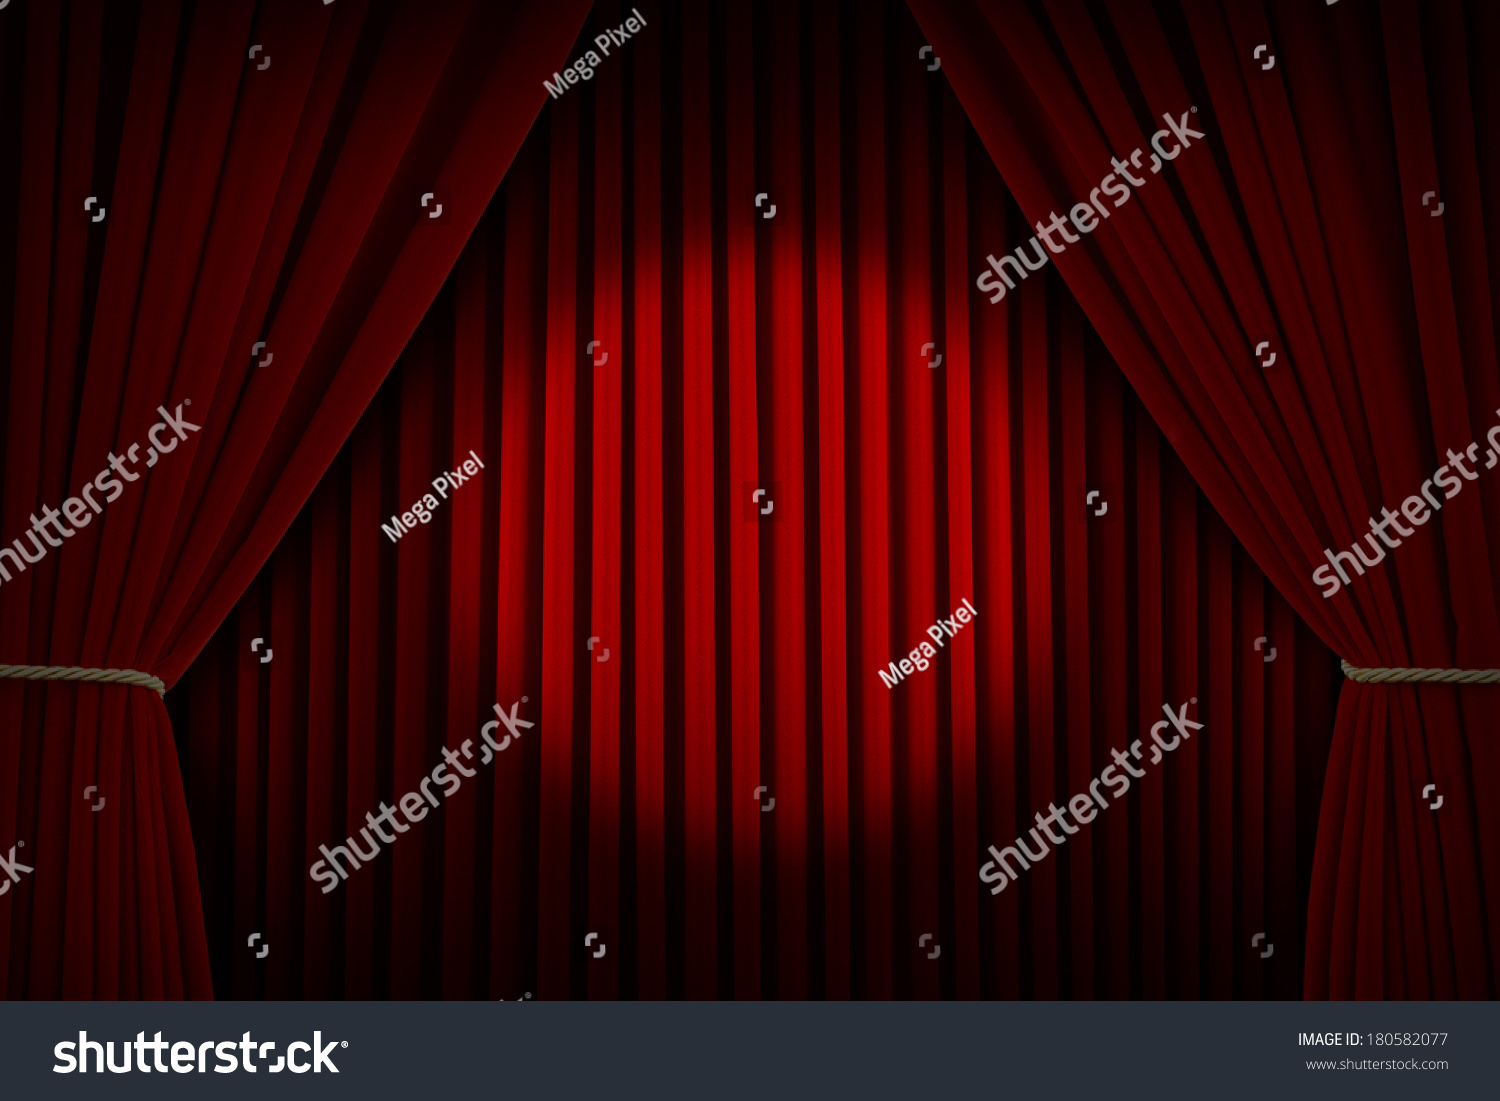 Stage curtains spotlight - Red Velvet Stage Curtains With Center Spotlight